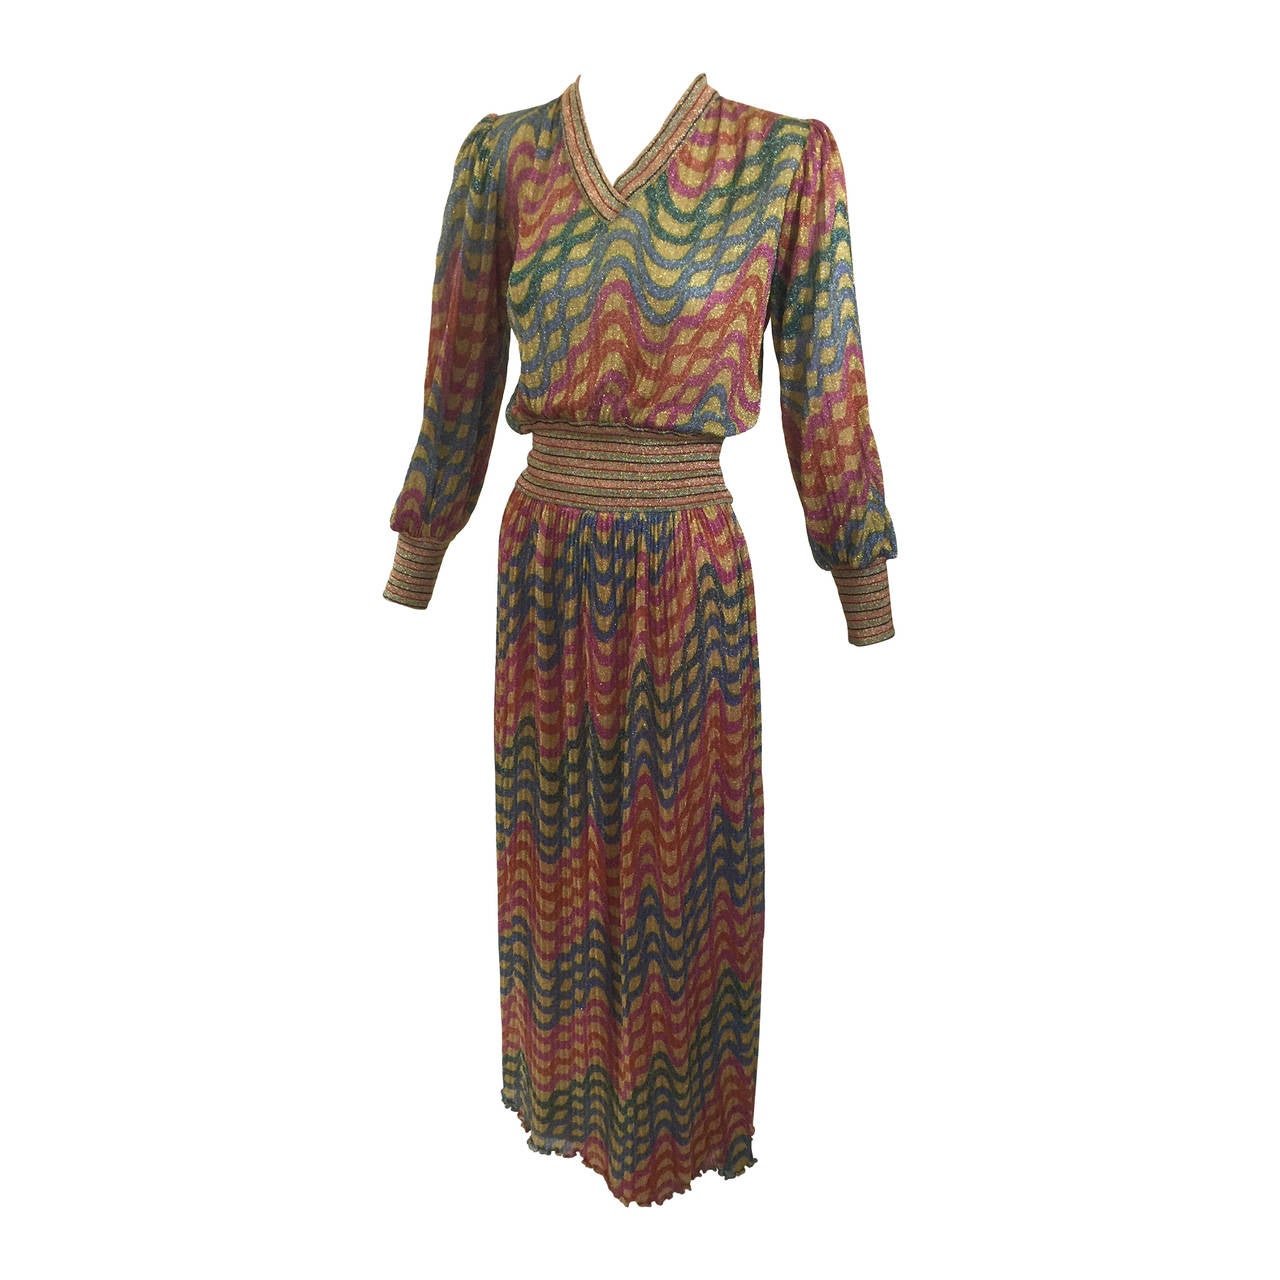 Vintage 1970s Missoni Metallic Top and Skirt Set